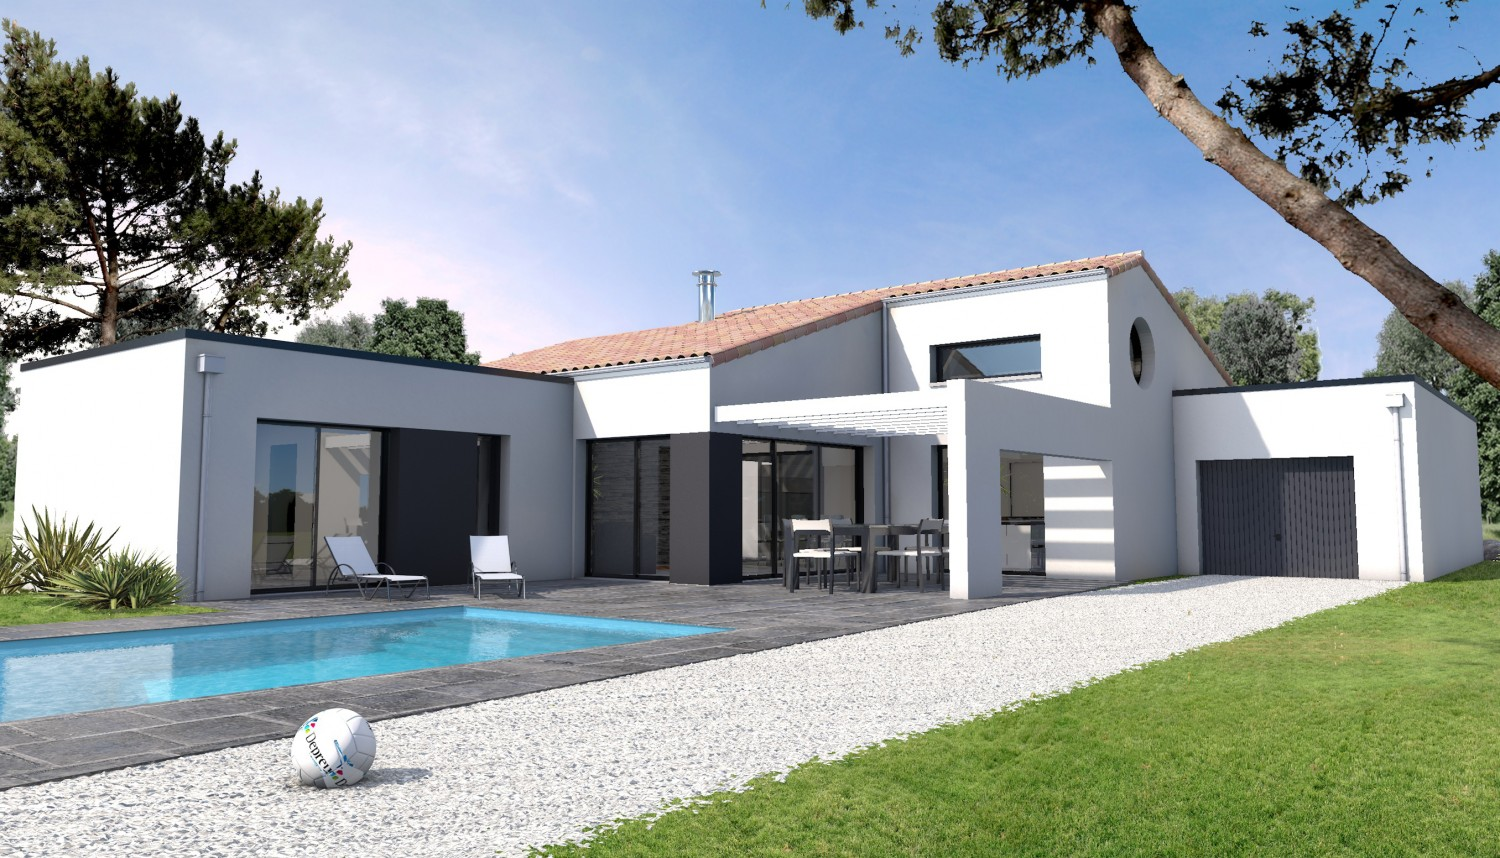 Style De Maison Contemporaine Construction Maison Moderne Mc Immo